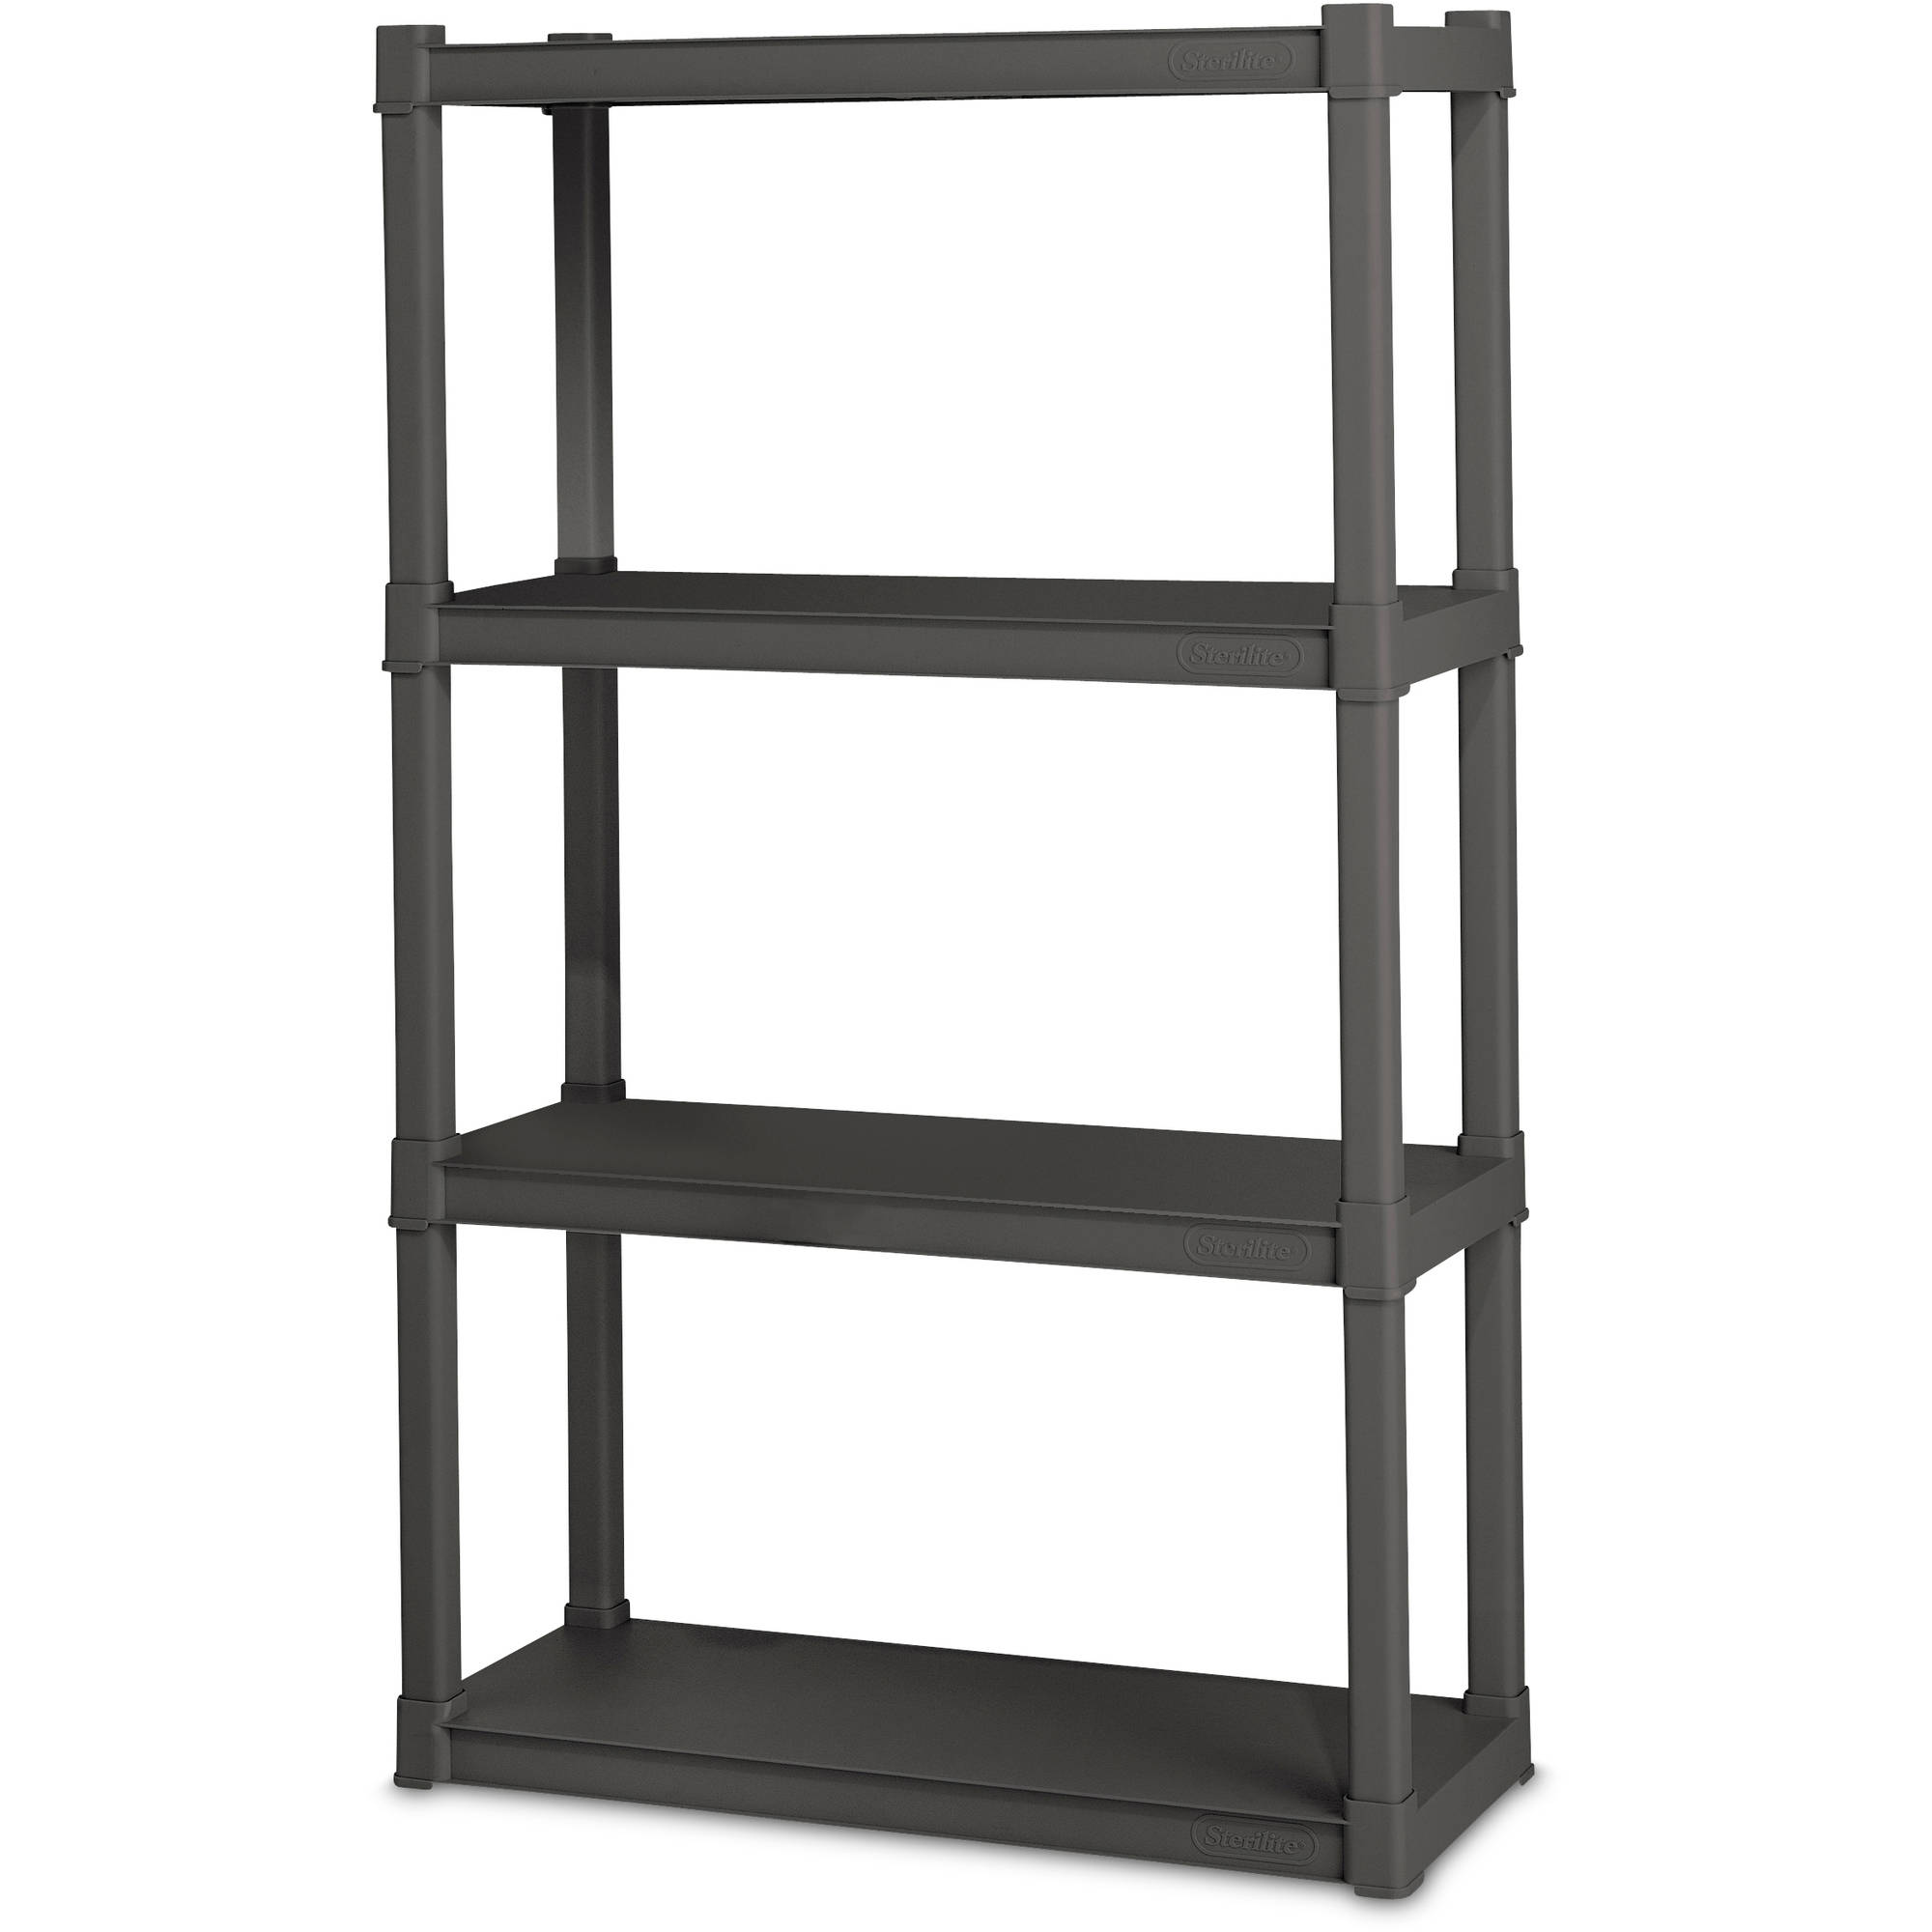 ***FAST TRACK*** Sterilite 4 Shelf Unit, Flat Gray